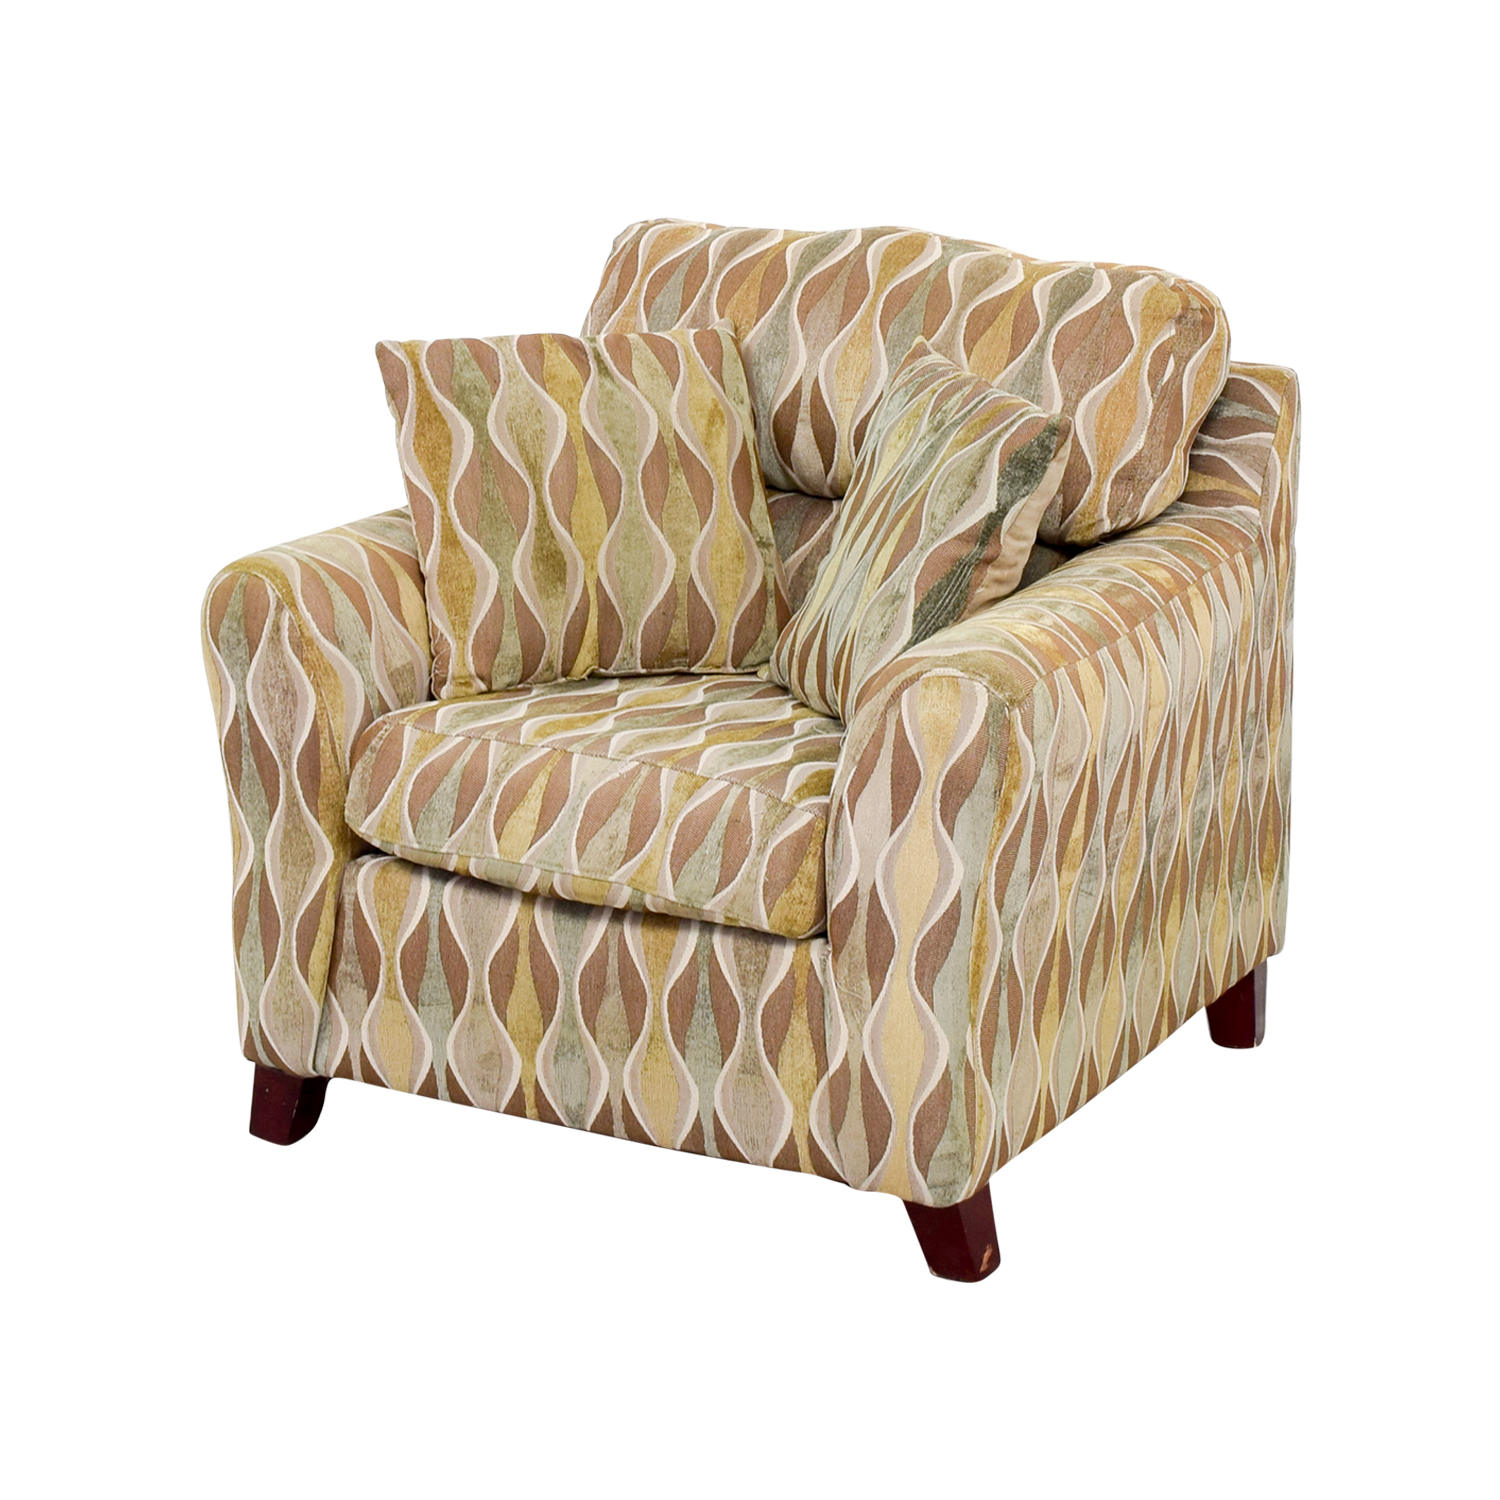 53% OFF Asymmetrical Accent Chair with Pillows Chairs